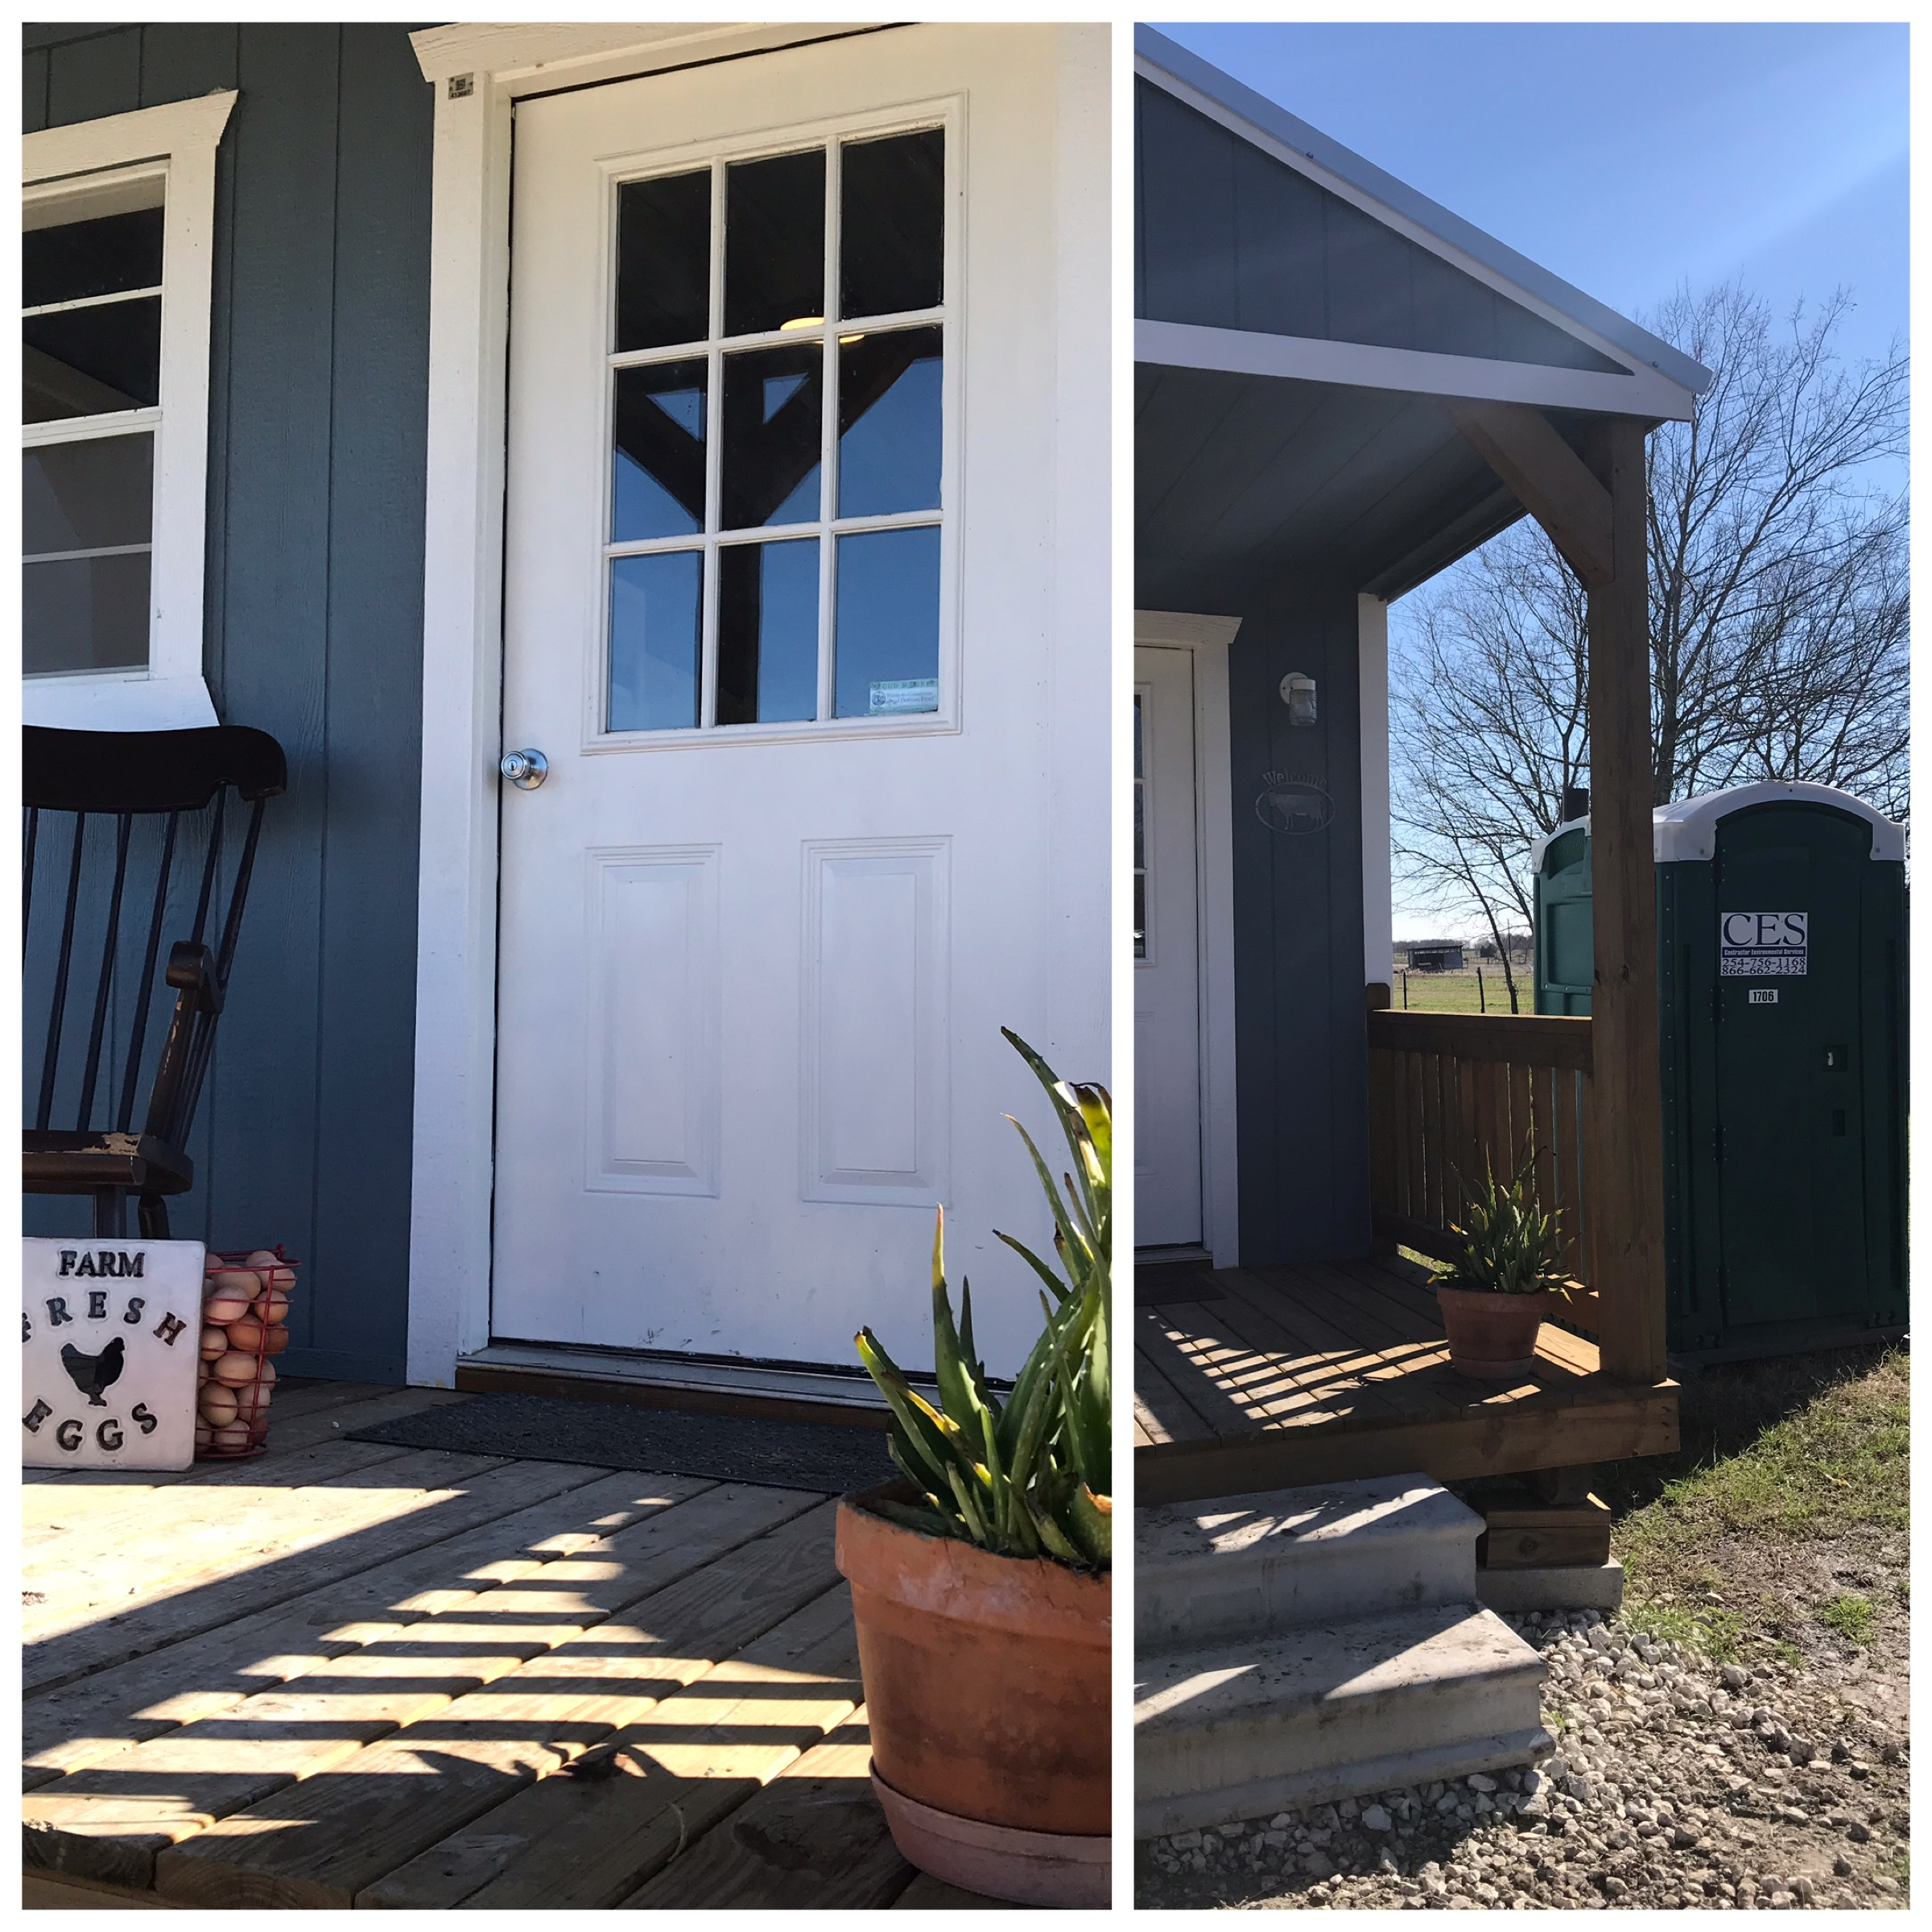 On the left - look at my instagram - perfect porch! but WAIT - really there's a PortaPotty in plain view when you drive up!